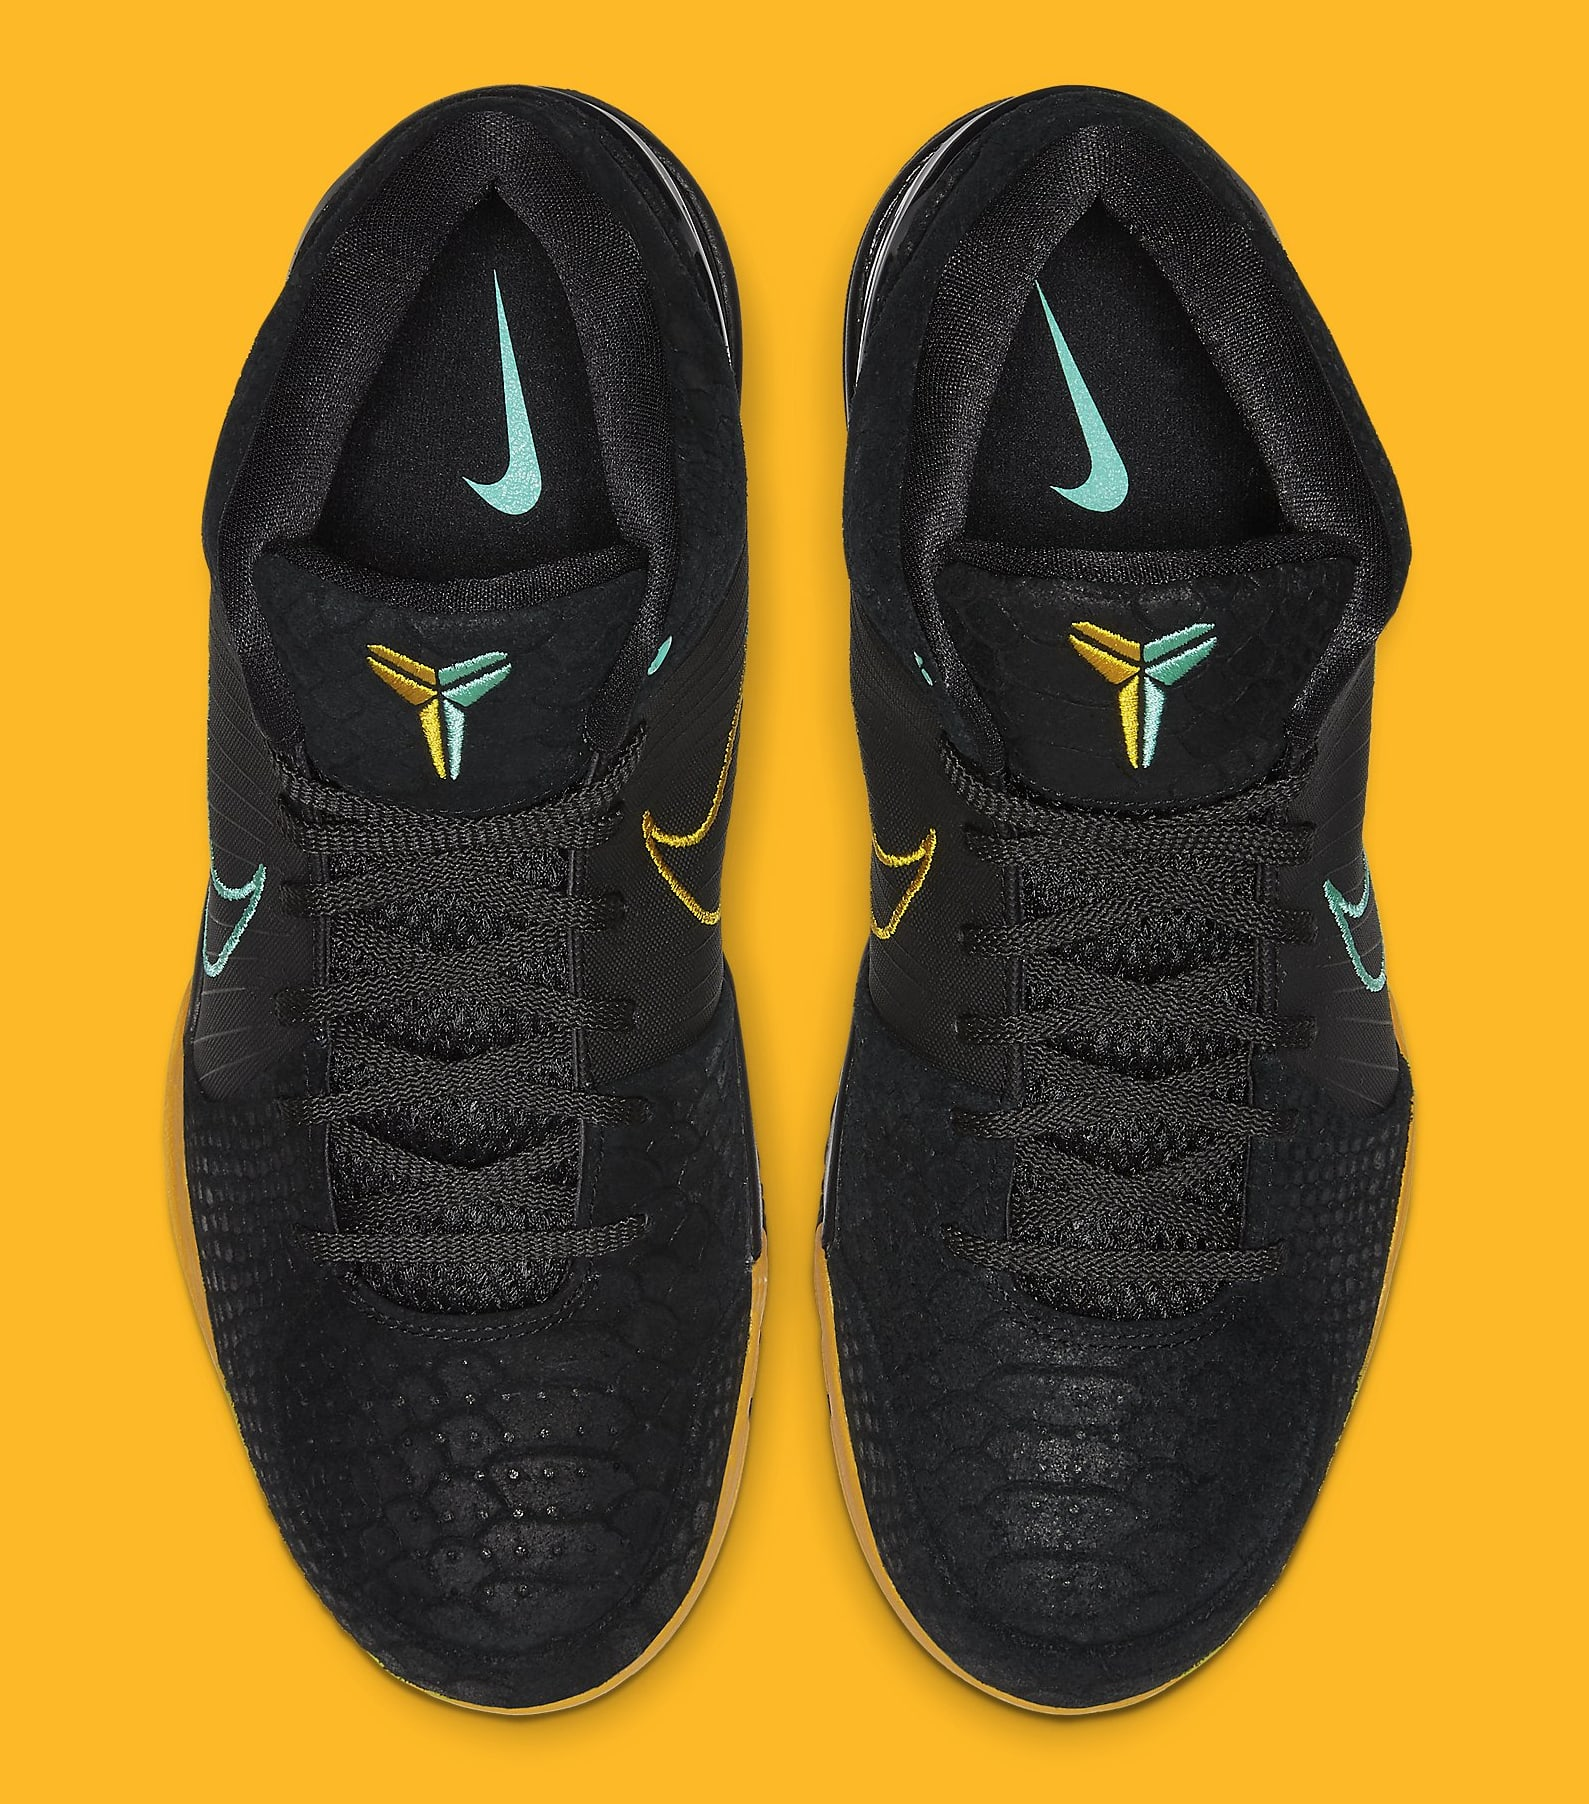 nike-zoom-kobe-4-iv-protro-black-aurora-green-university-gold-av6339-002-top